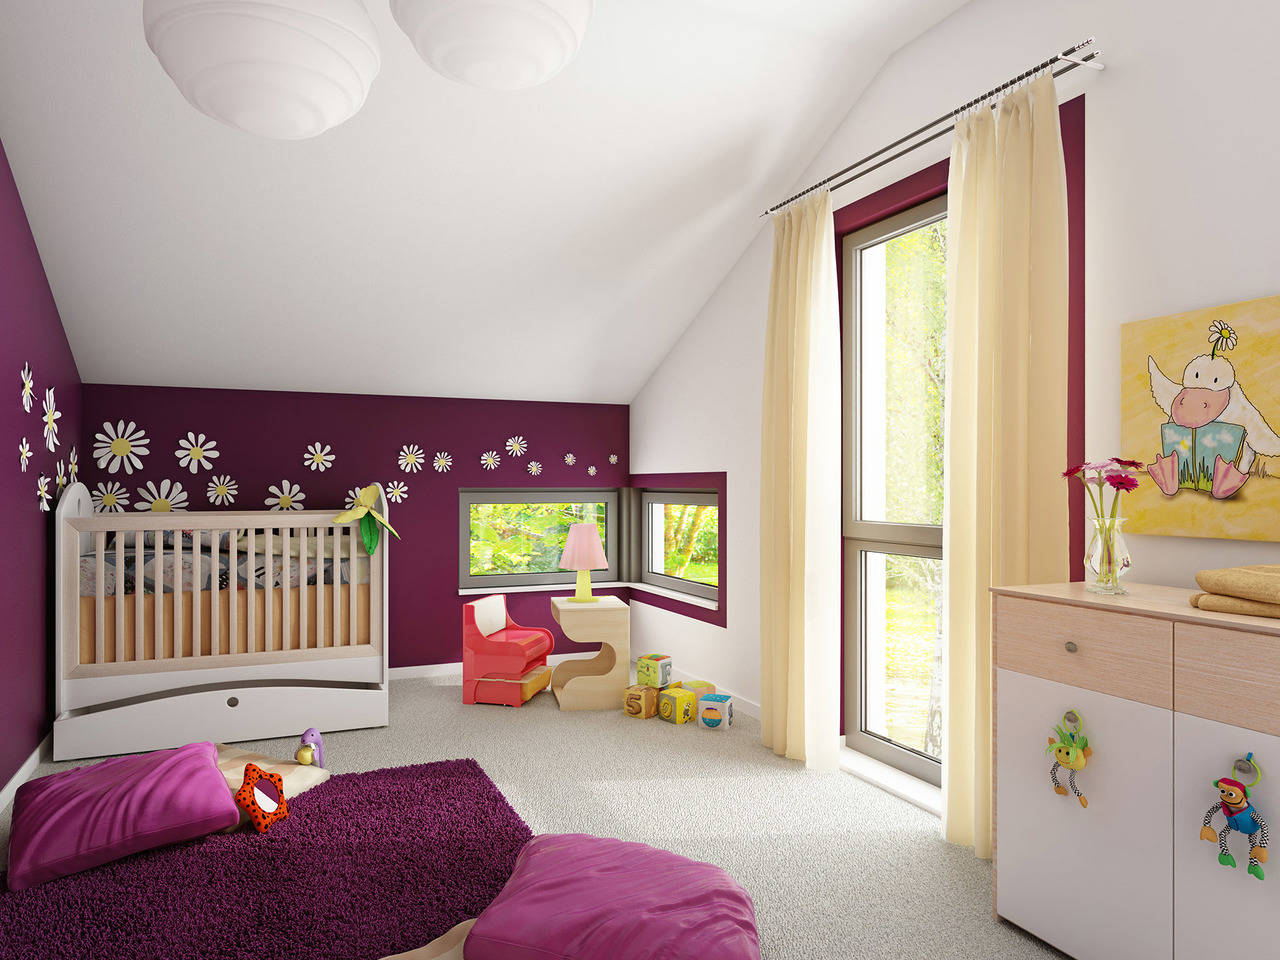 Haus SOLUTION 204-v2 Kinderzimmer von Living Hausä